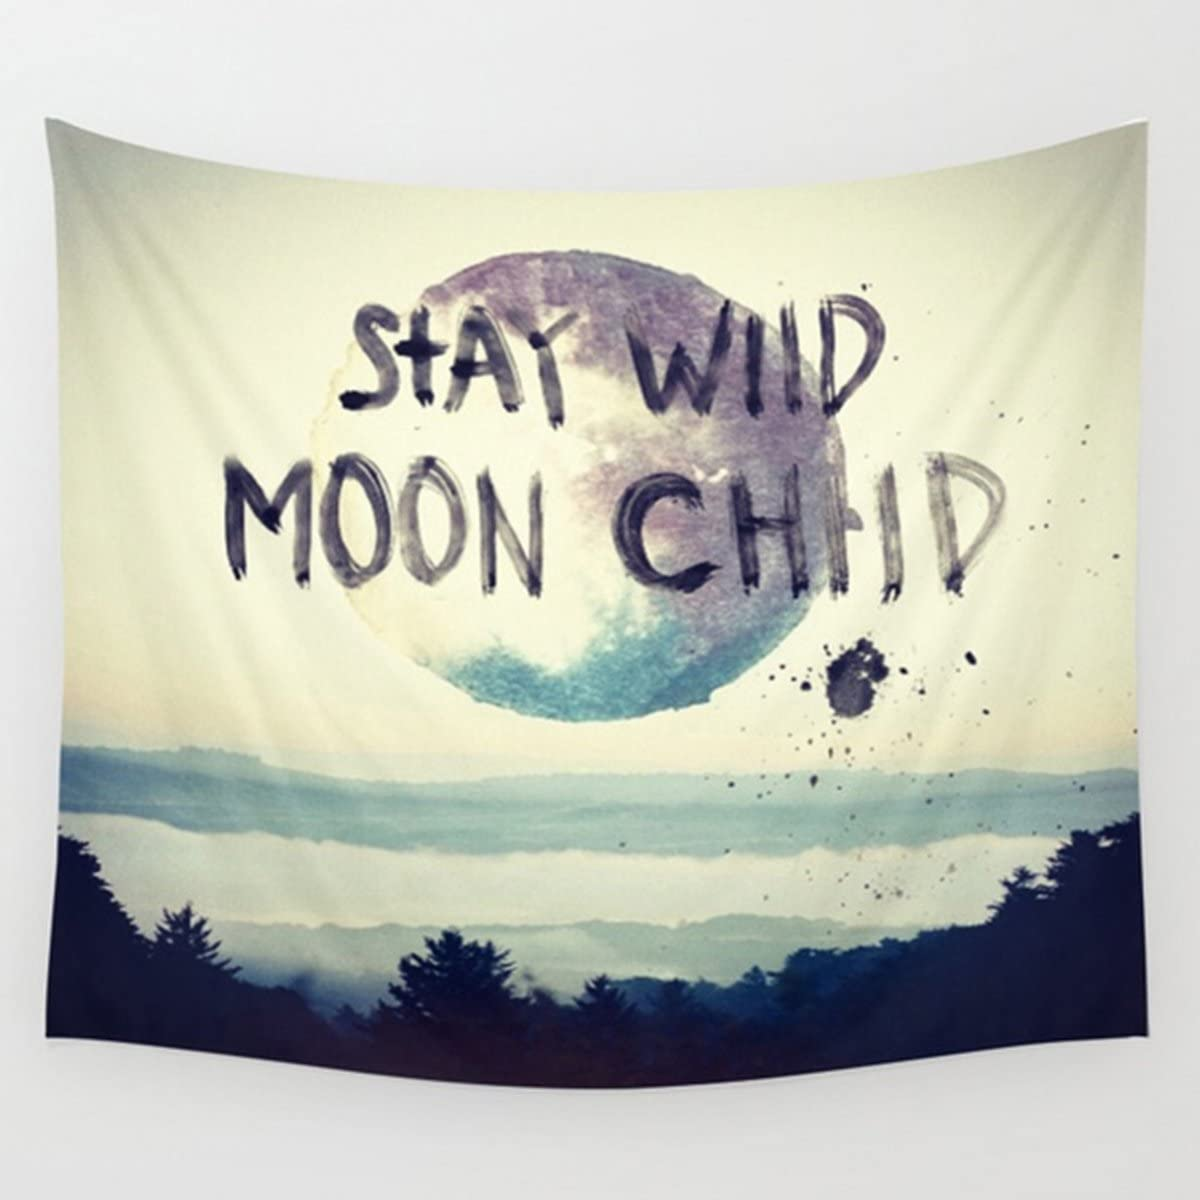 Koongso Moon and Forest Tapestry Wall Hanging,Stay Wild Moon Child Printed Hippie Wall Art Hanging Tapestry Dorm Decor